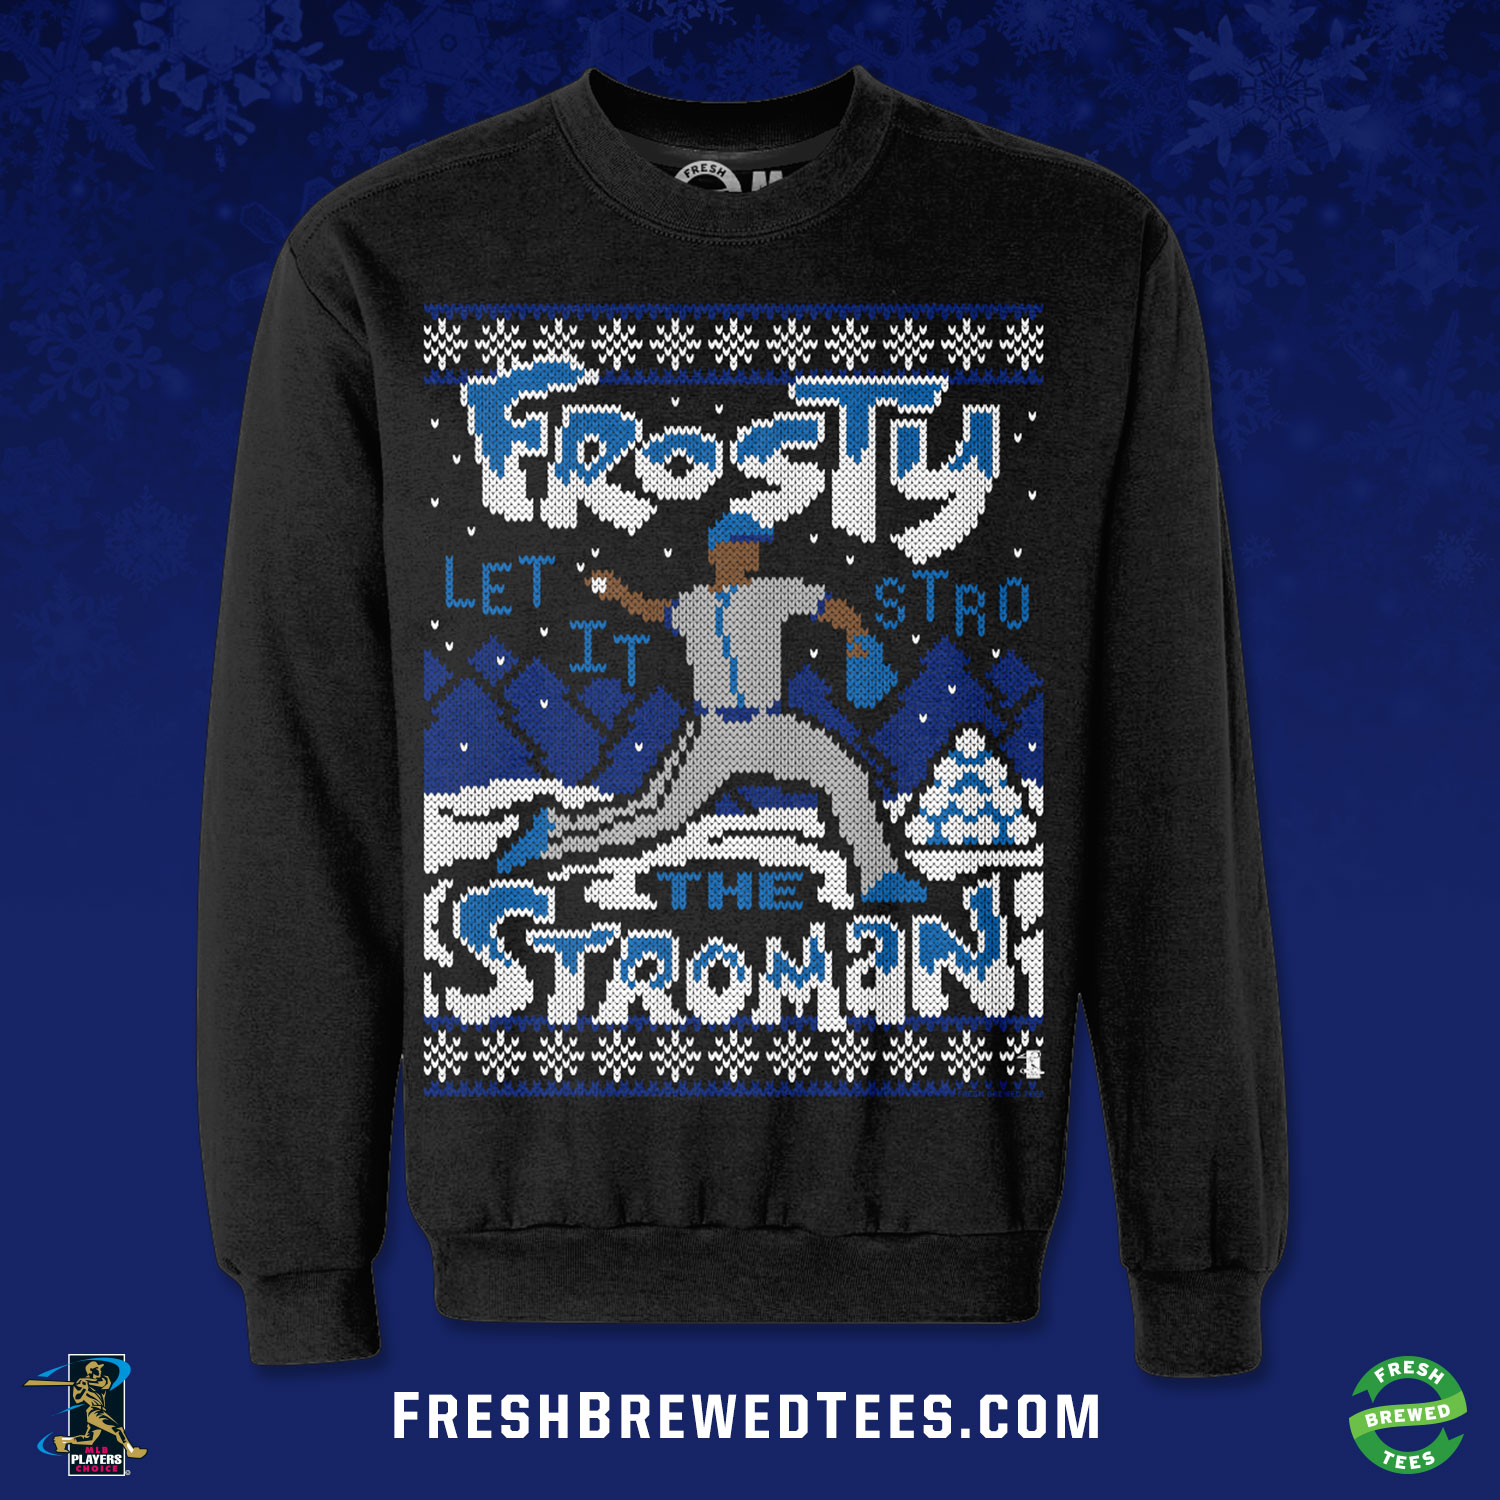 Frosty the Stroman: Blue Jays star gets epic Christmas sweater ...